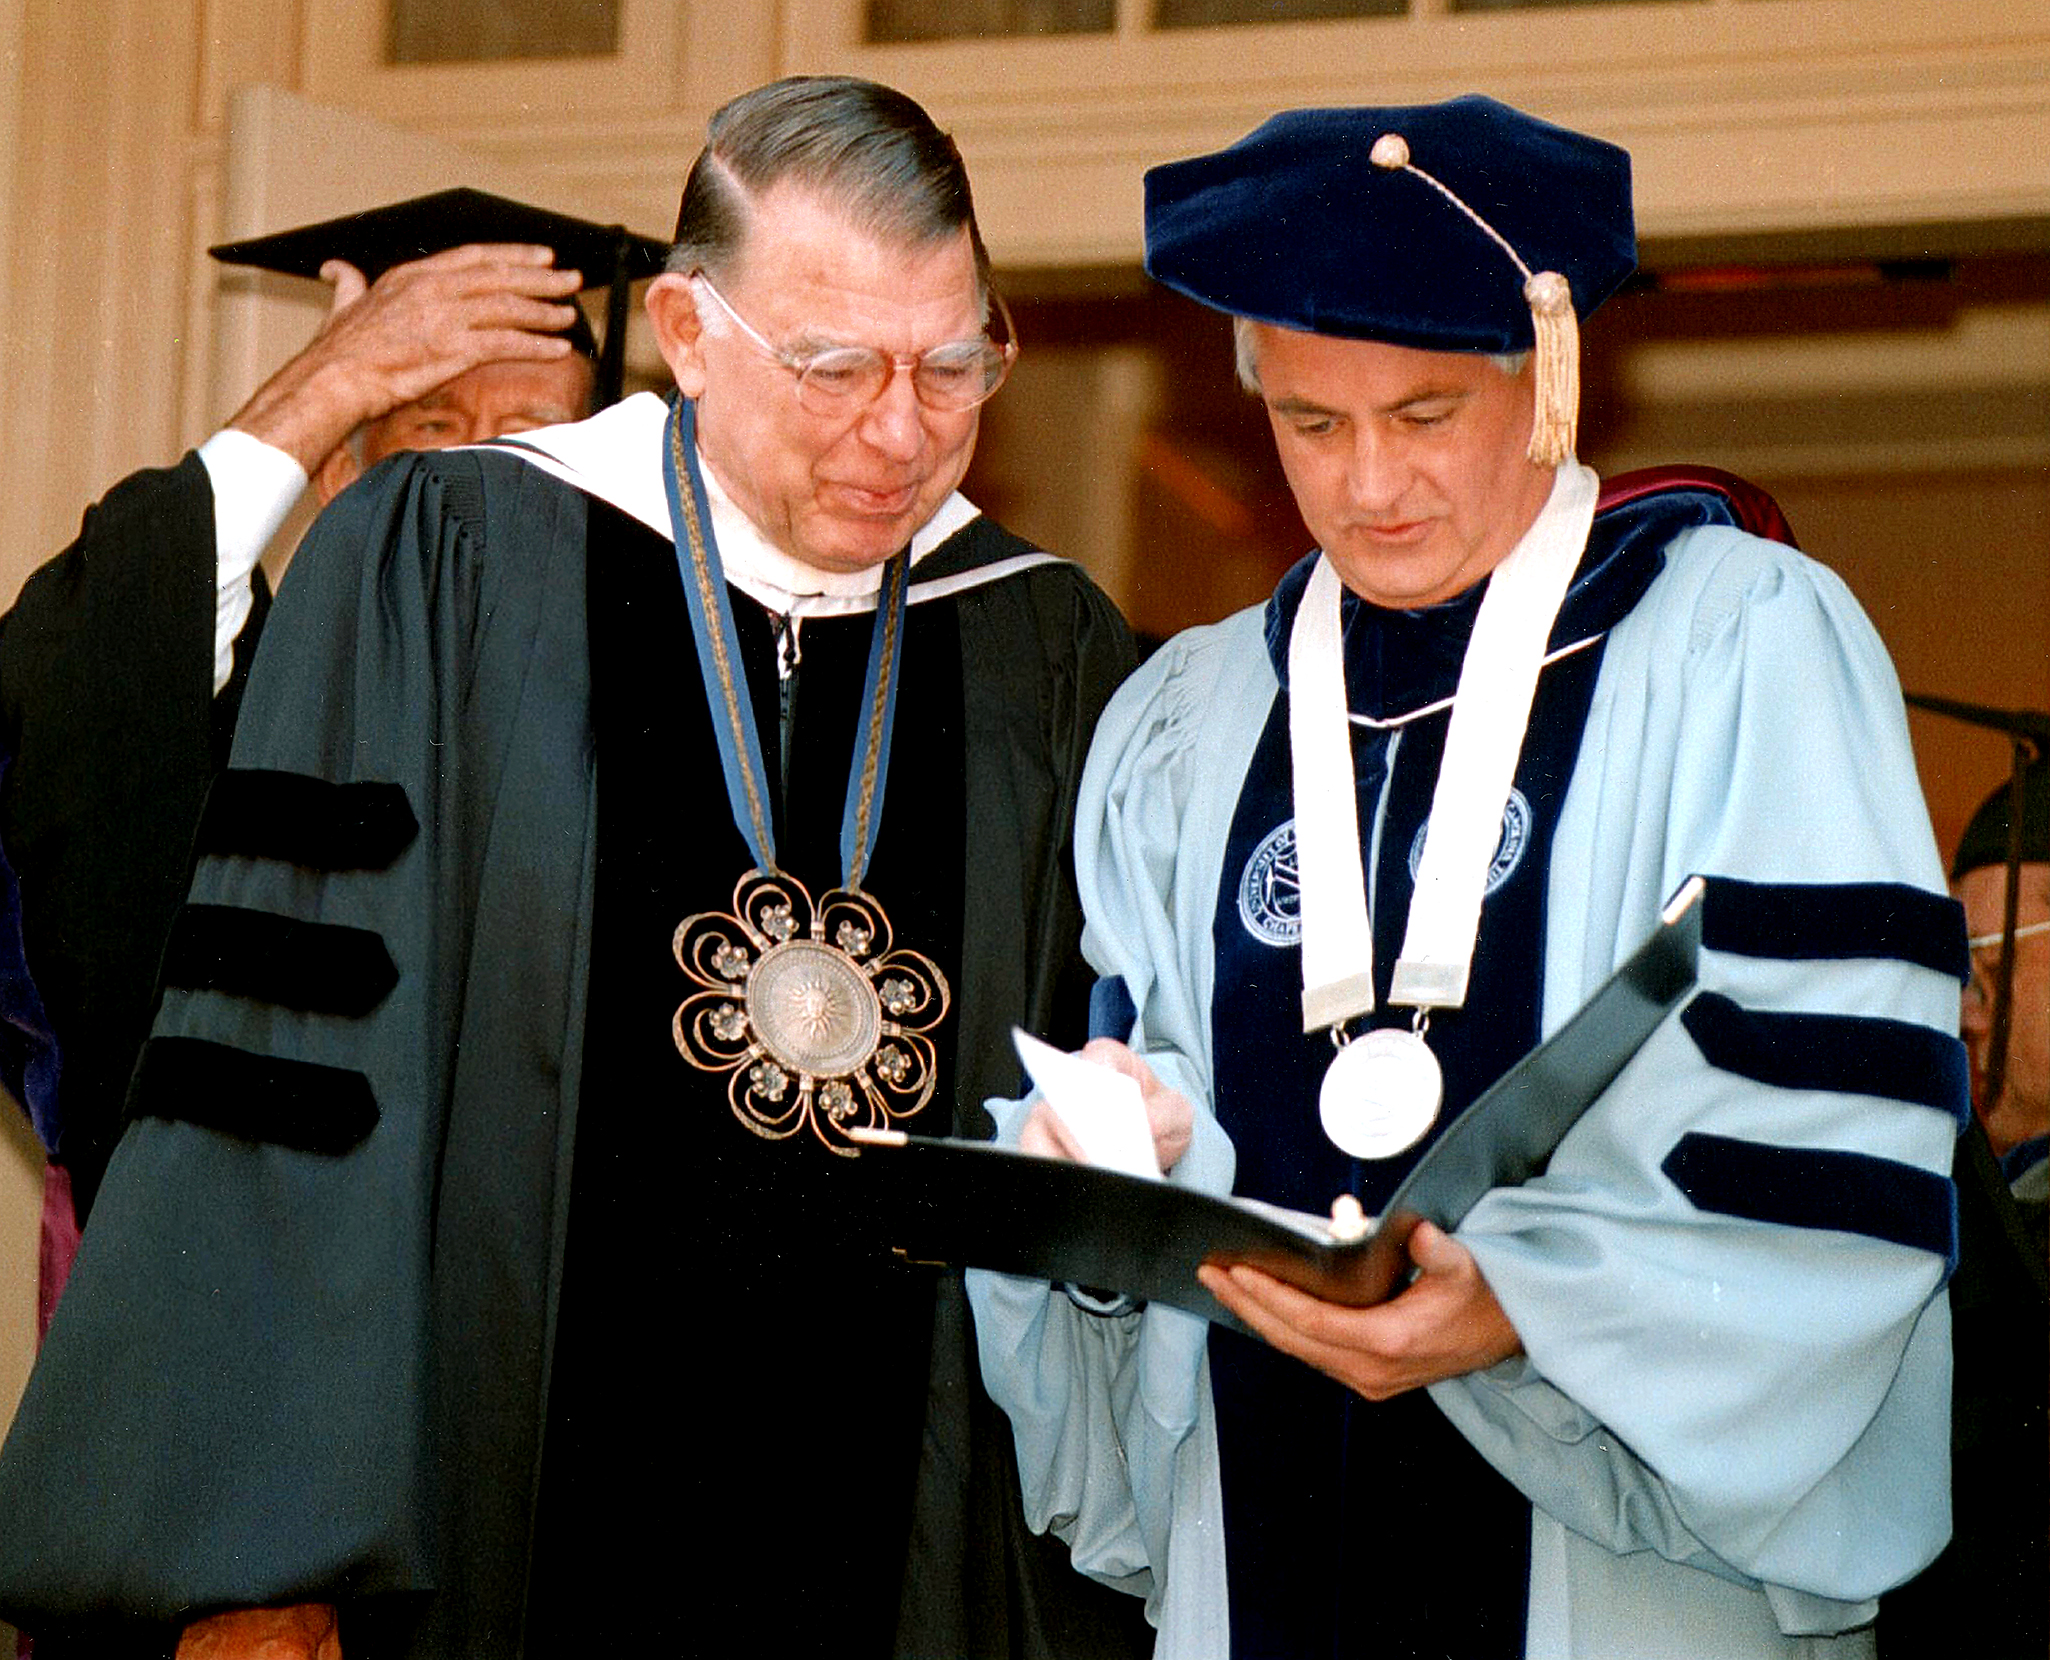 C.D. Spangler Jr., left, and Chancellor Michael Hooker.